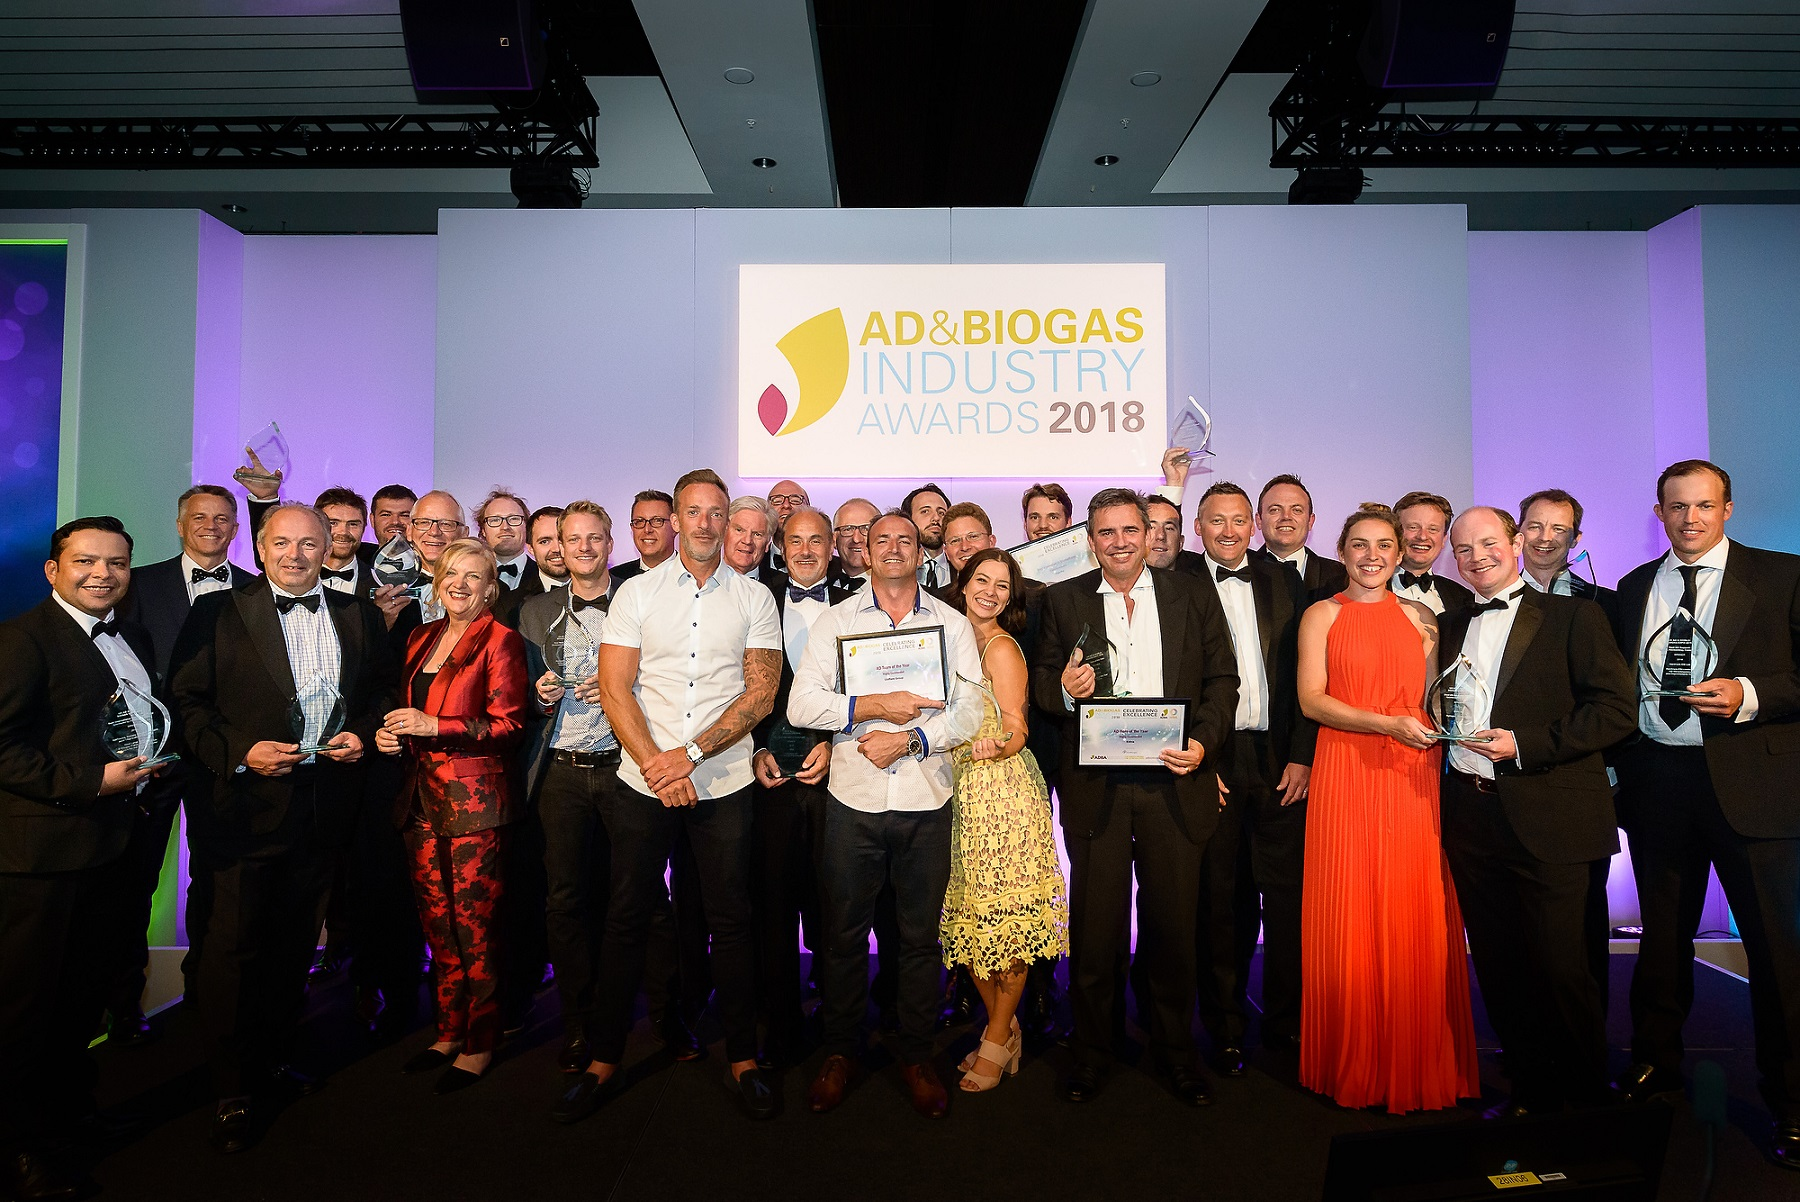 PRESS RELEASE: Applications Open For Global Anaerobic Digestion Industry Awards